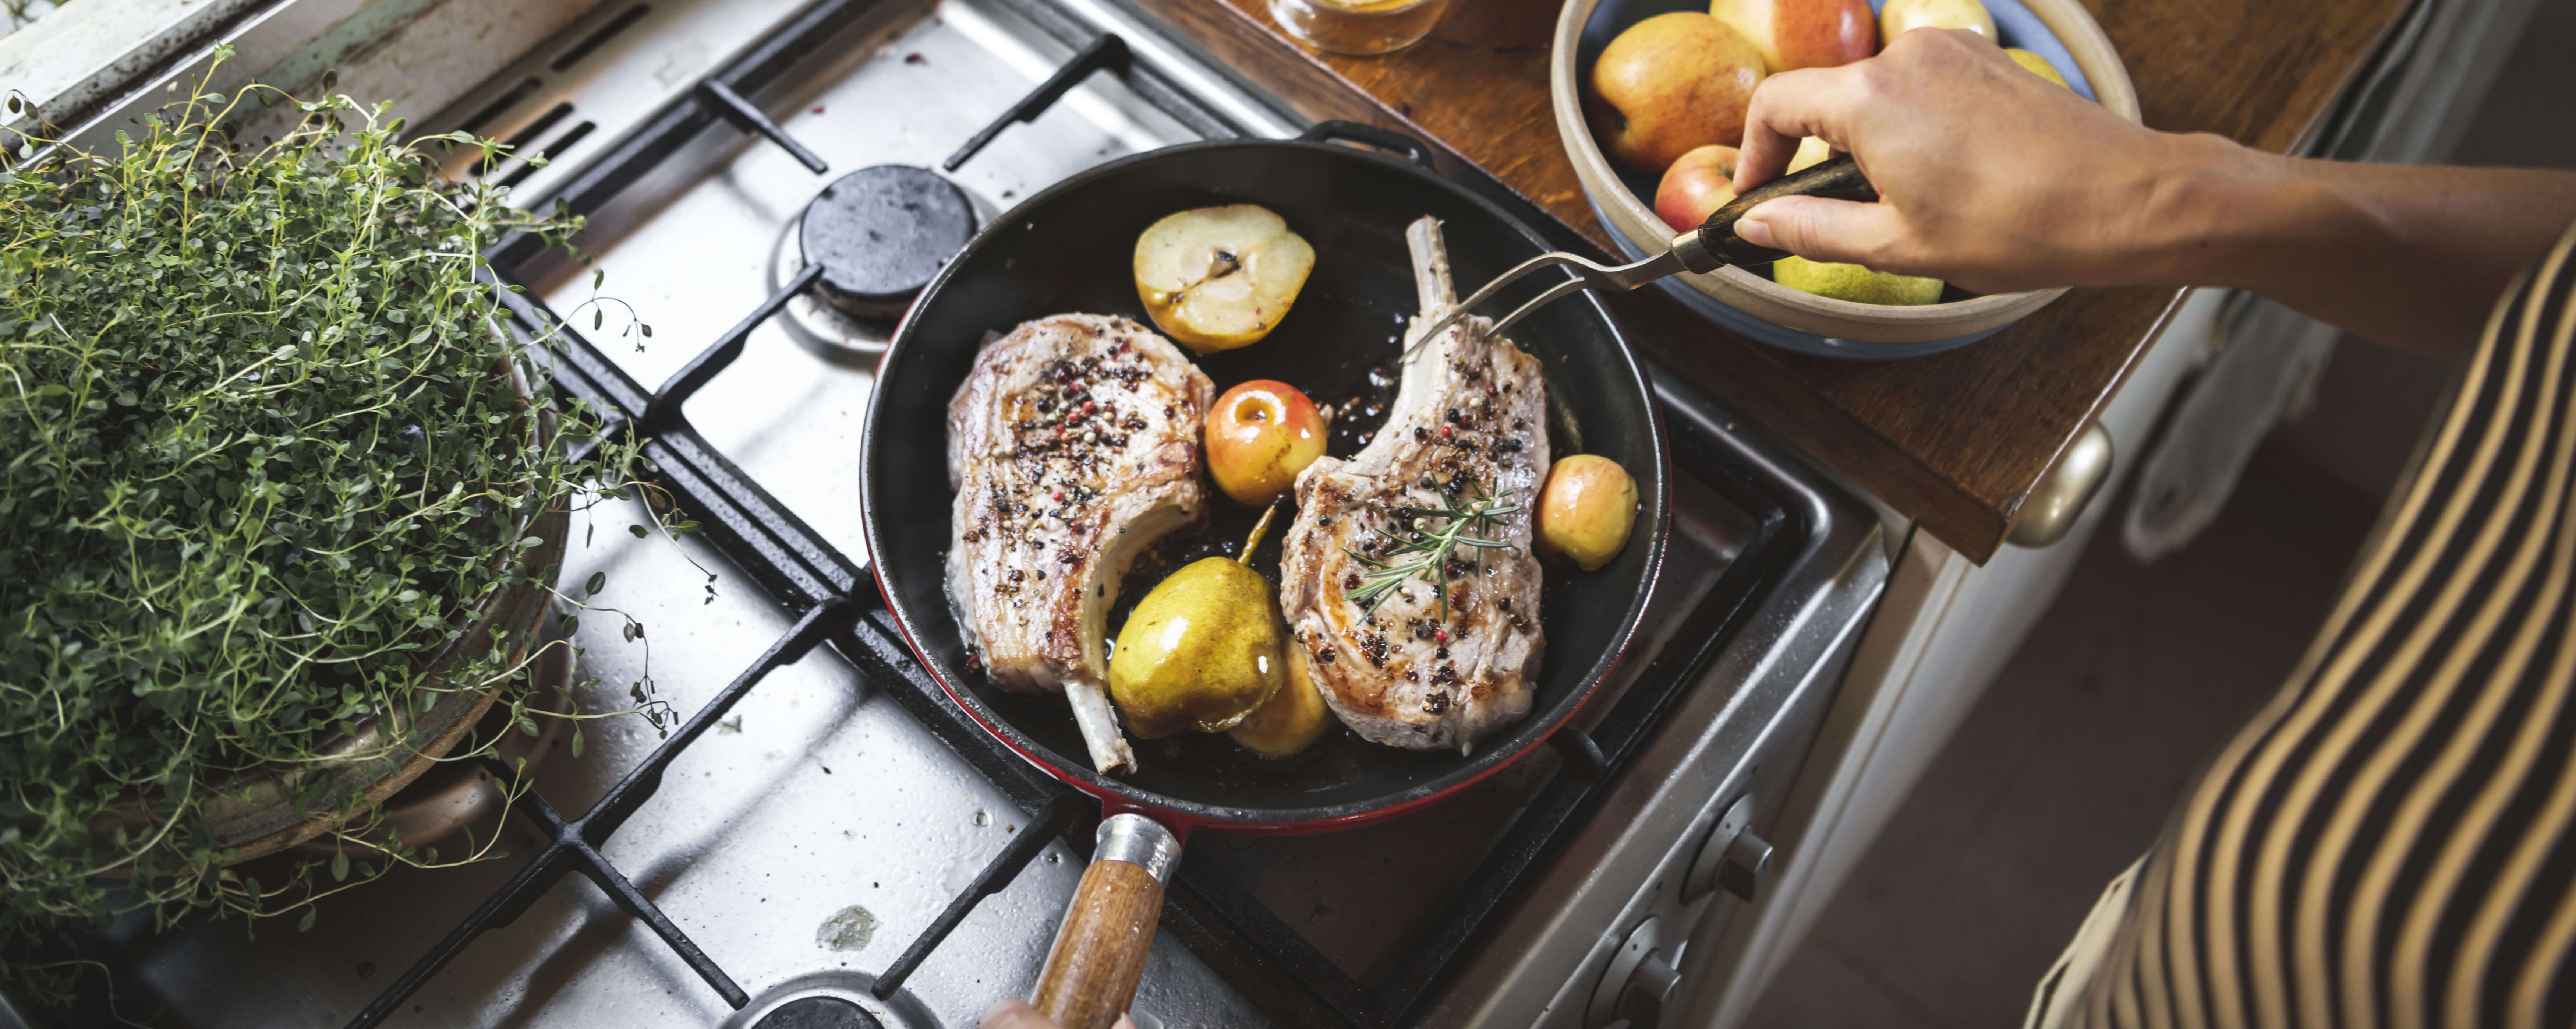 A person is cooking pork chops on a propane stovetop. In the frying pan are fresh herbs, apple and pear halves.